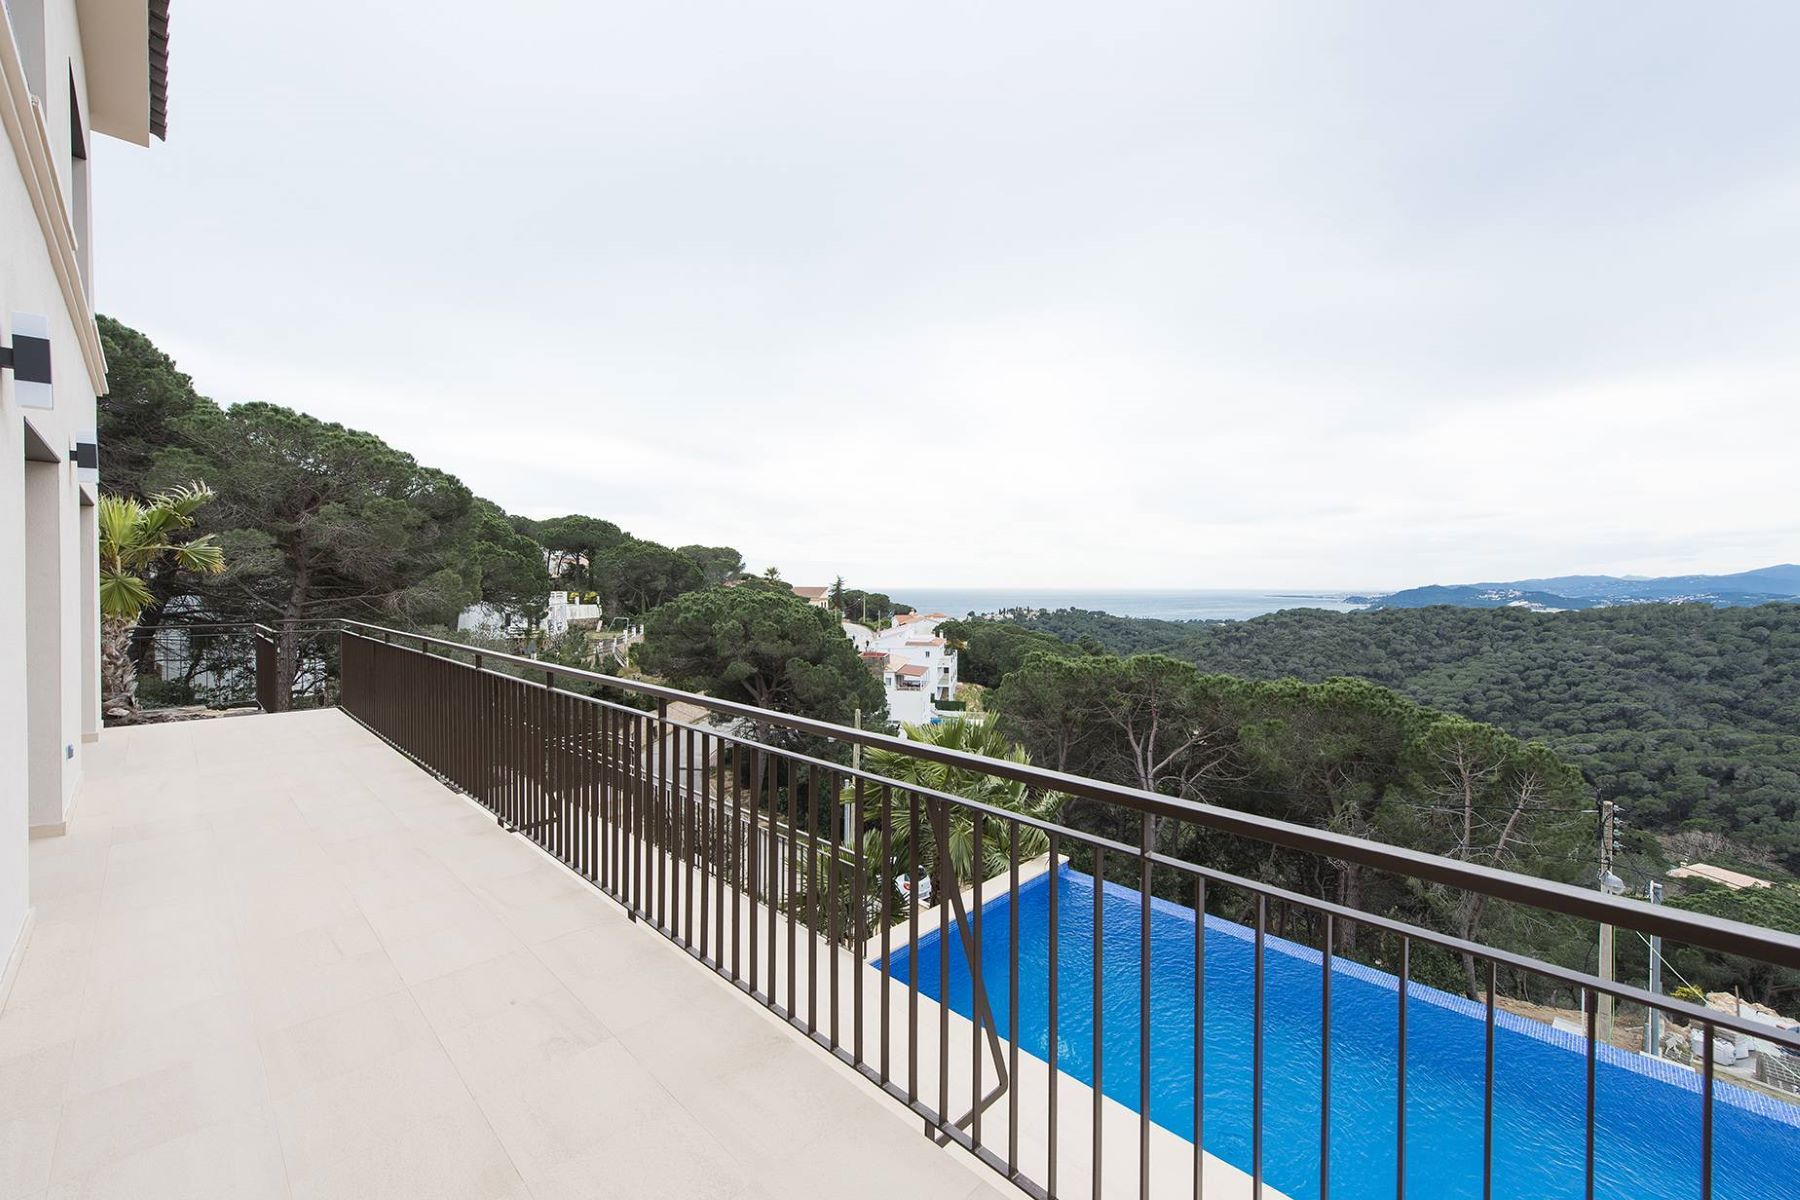 Single Family Home for Sale at Newly built villa with fantastic sea views just 5 minutes to the beach Lloret De Mar, Costa Brava, 17310 Spain